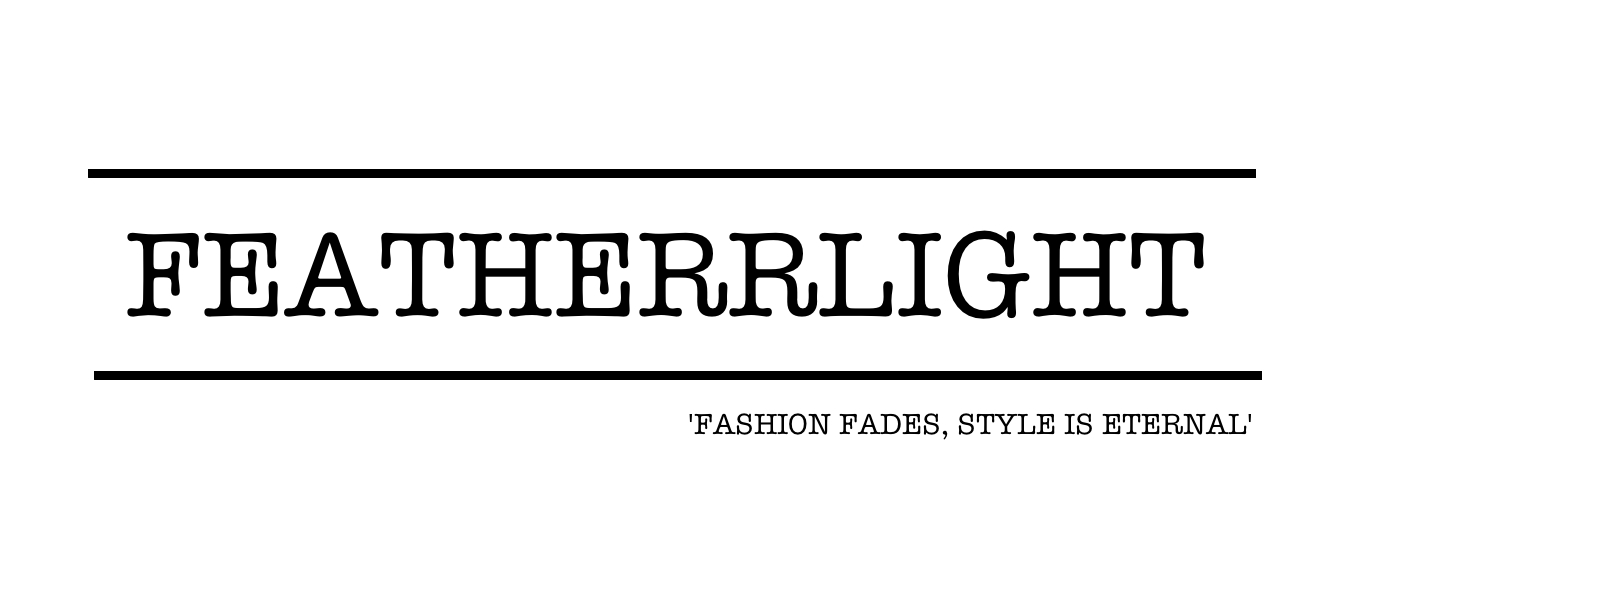 Featherlight